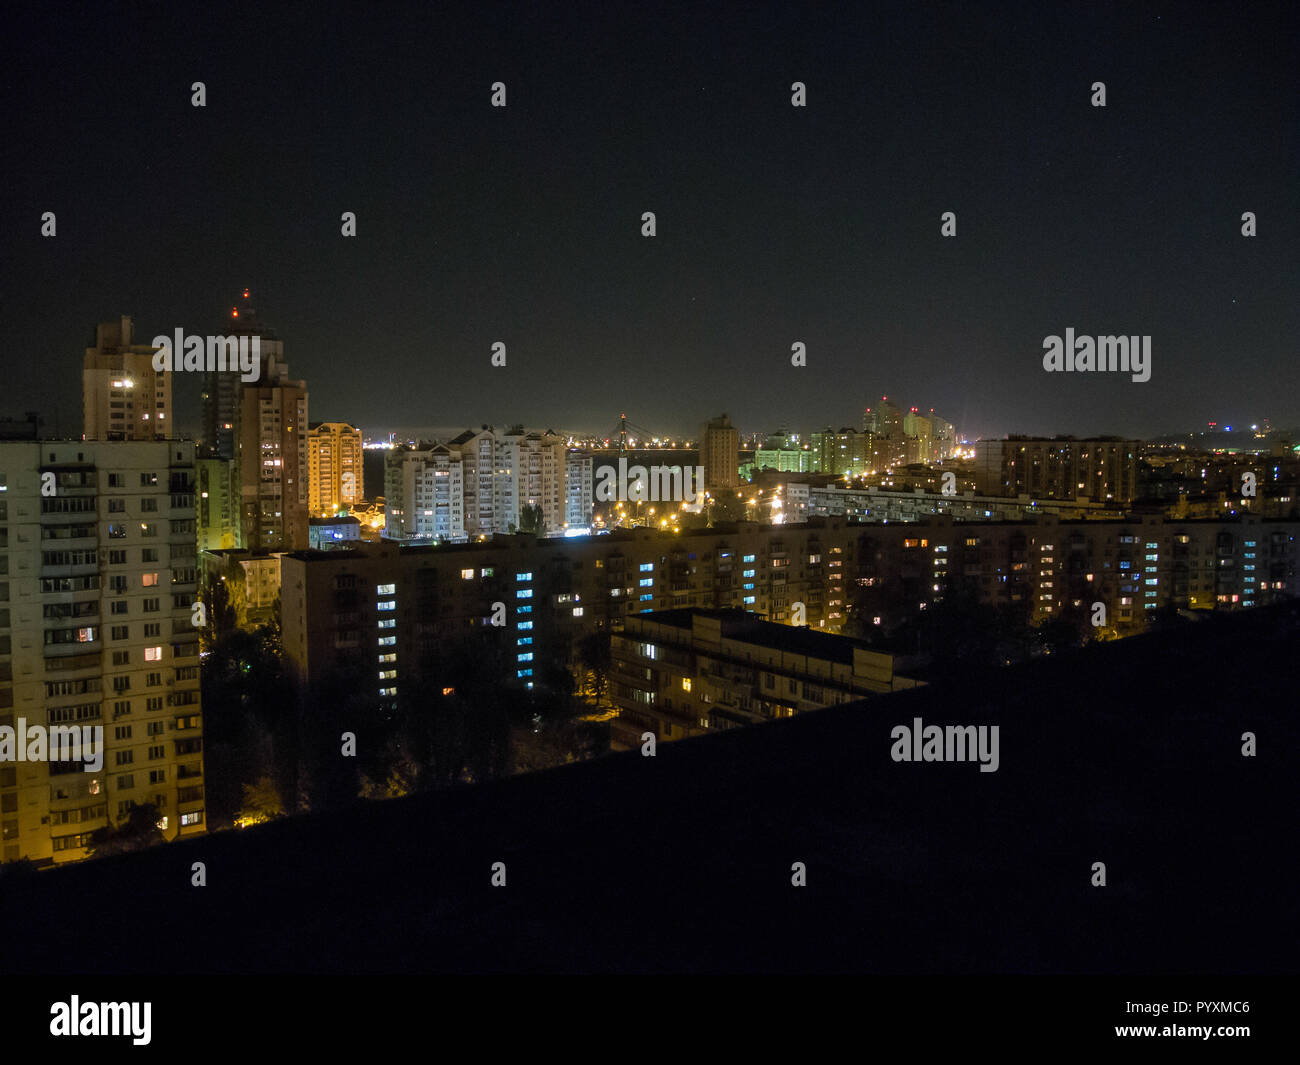 Night city landscape, sleeping quarters with tall houses - Stock Image